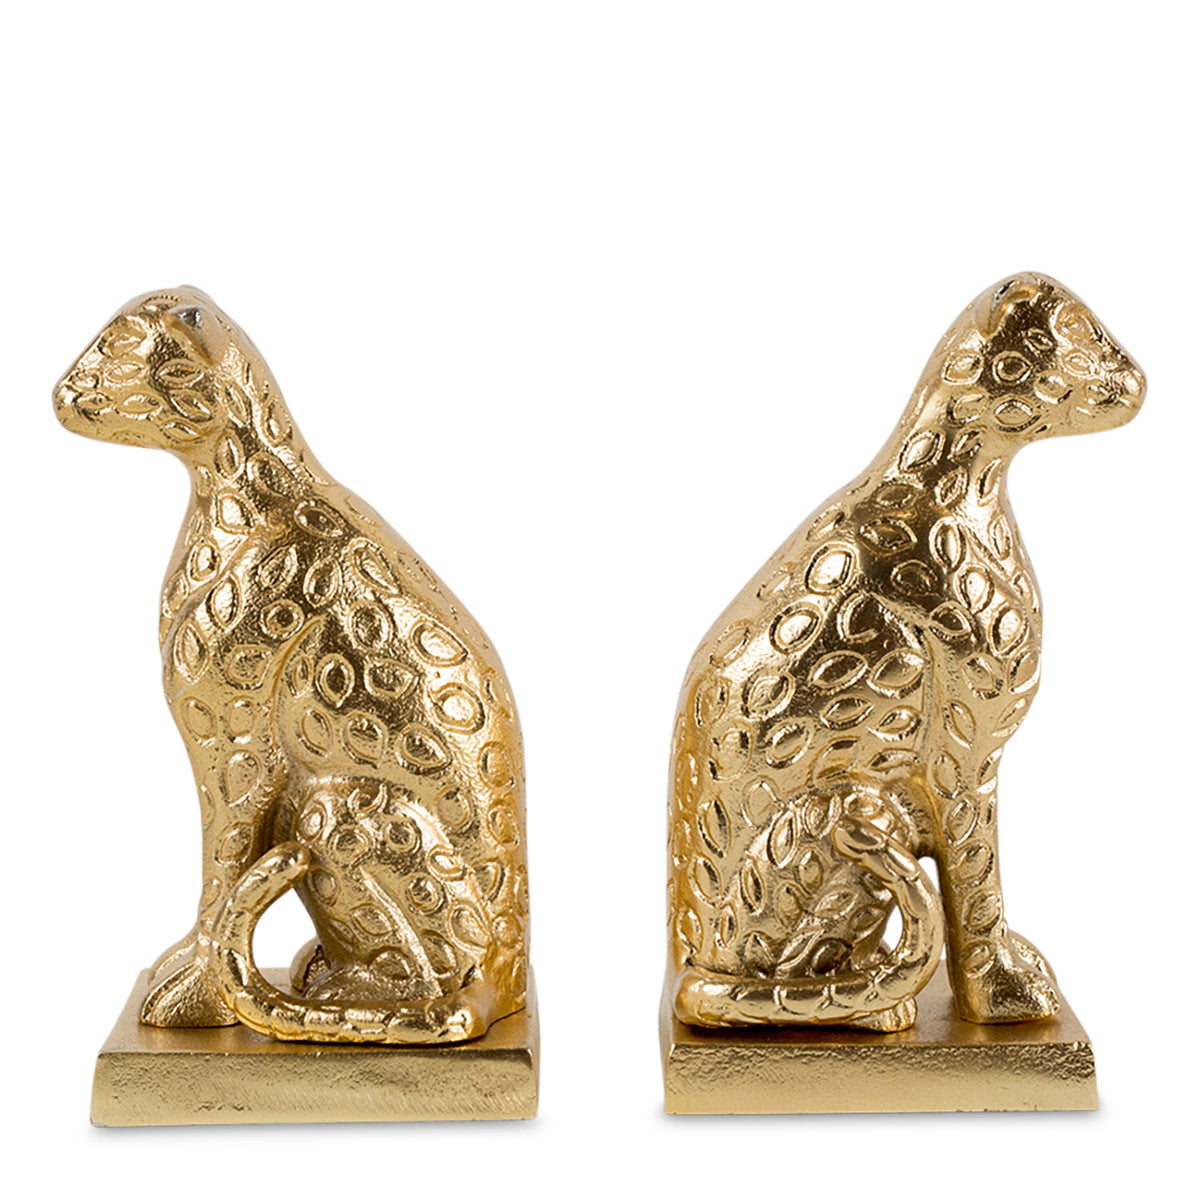 Furbish Studio - Gold Leopard Bookends back to back image